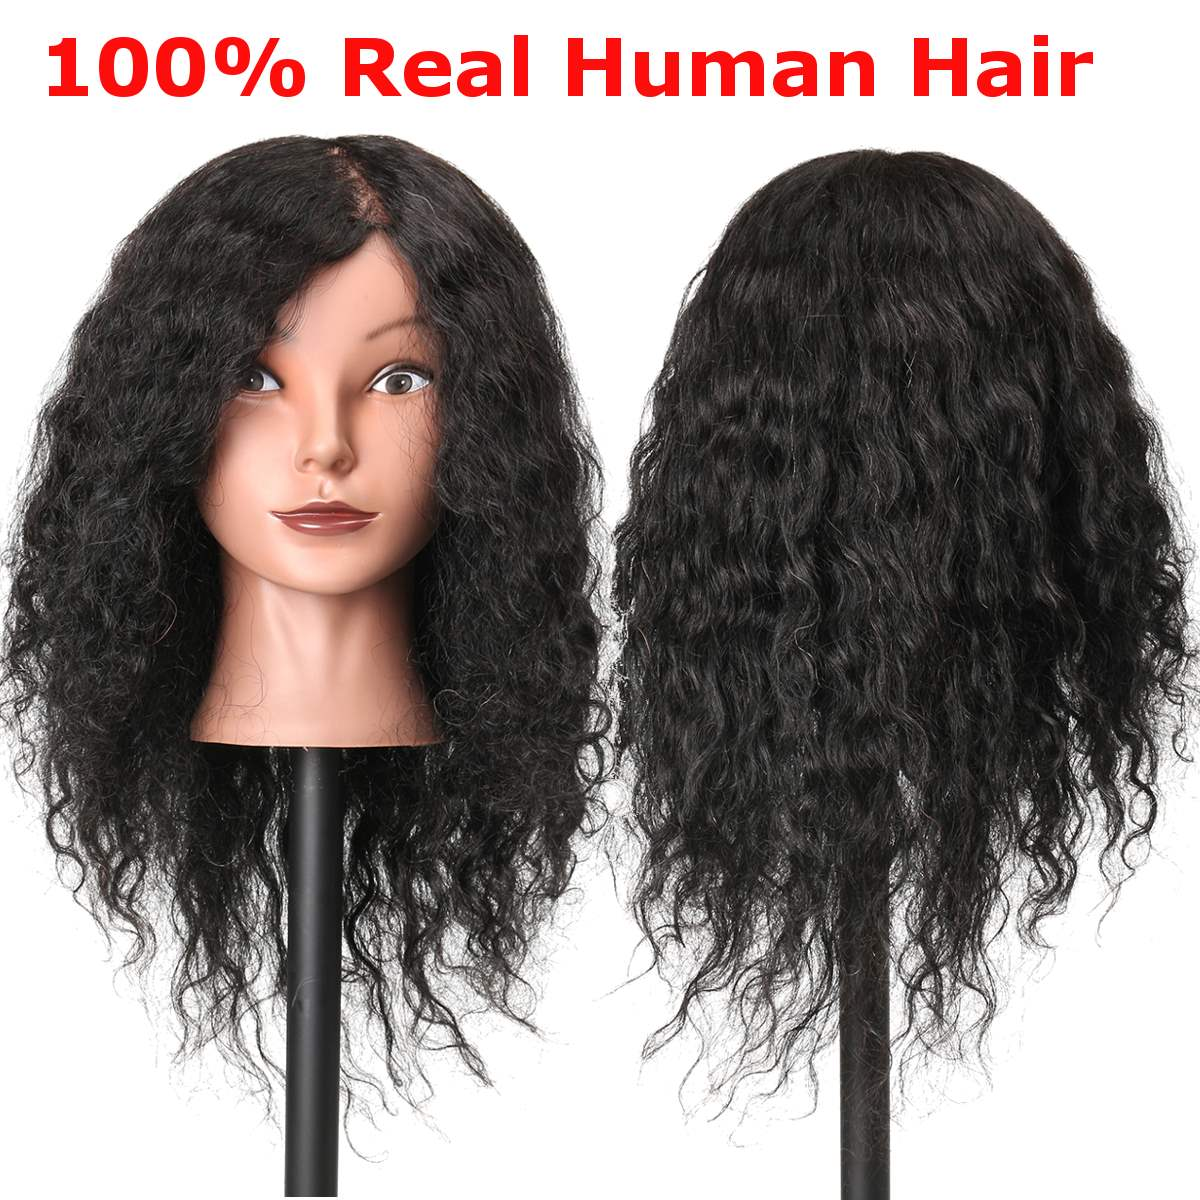 18 100 Real Human Hair Training Manequin Head With